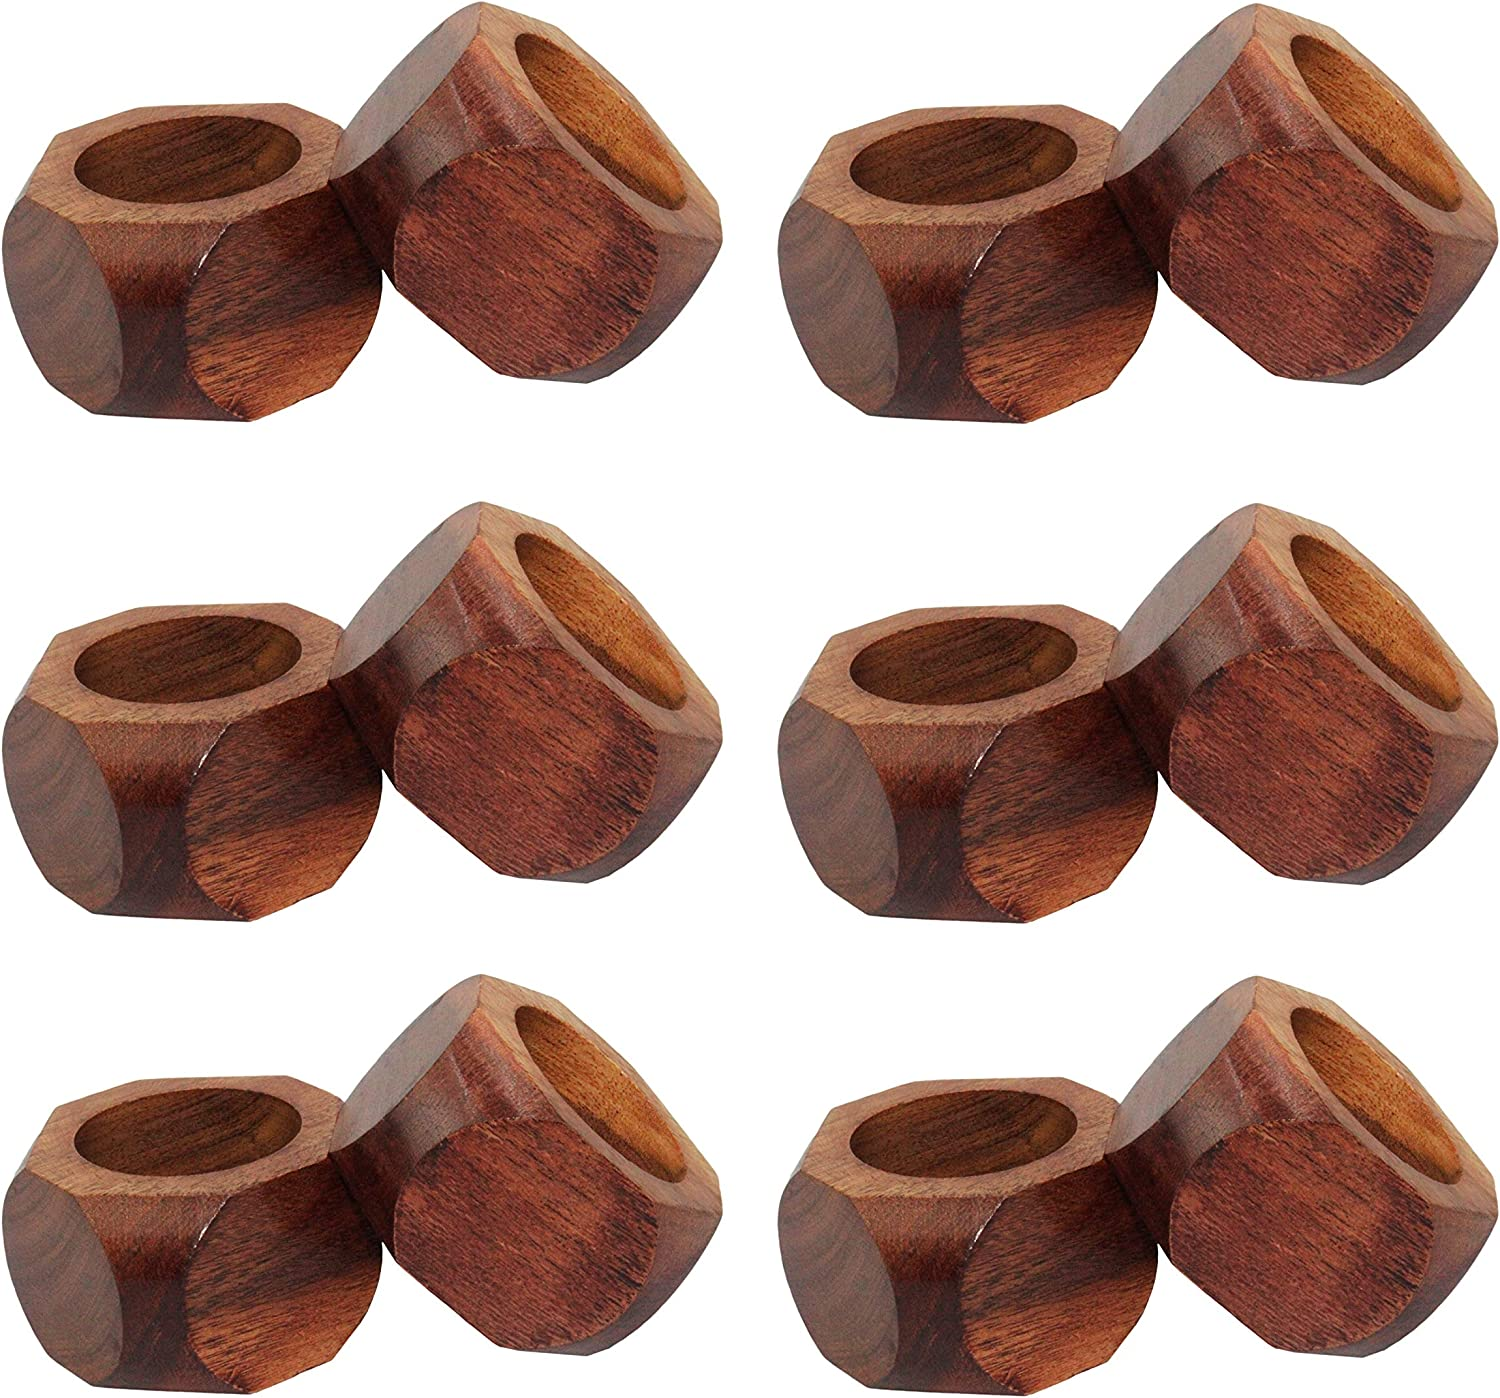 COTTON CRAFT Chunky Octagon Handmade Wood Dining Table Napkin Rings - Set of 12 - Halloween Harvest Autumn Fall Thanksgiving Holiday Christmas Xmas Celebration Festive Party Gift Décor - Dark Natural